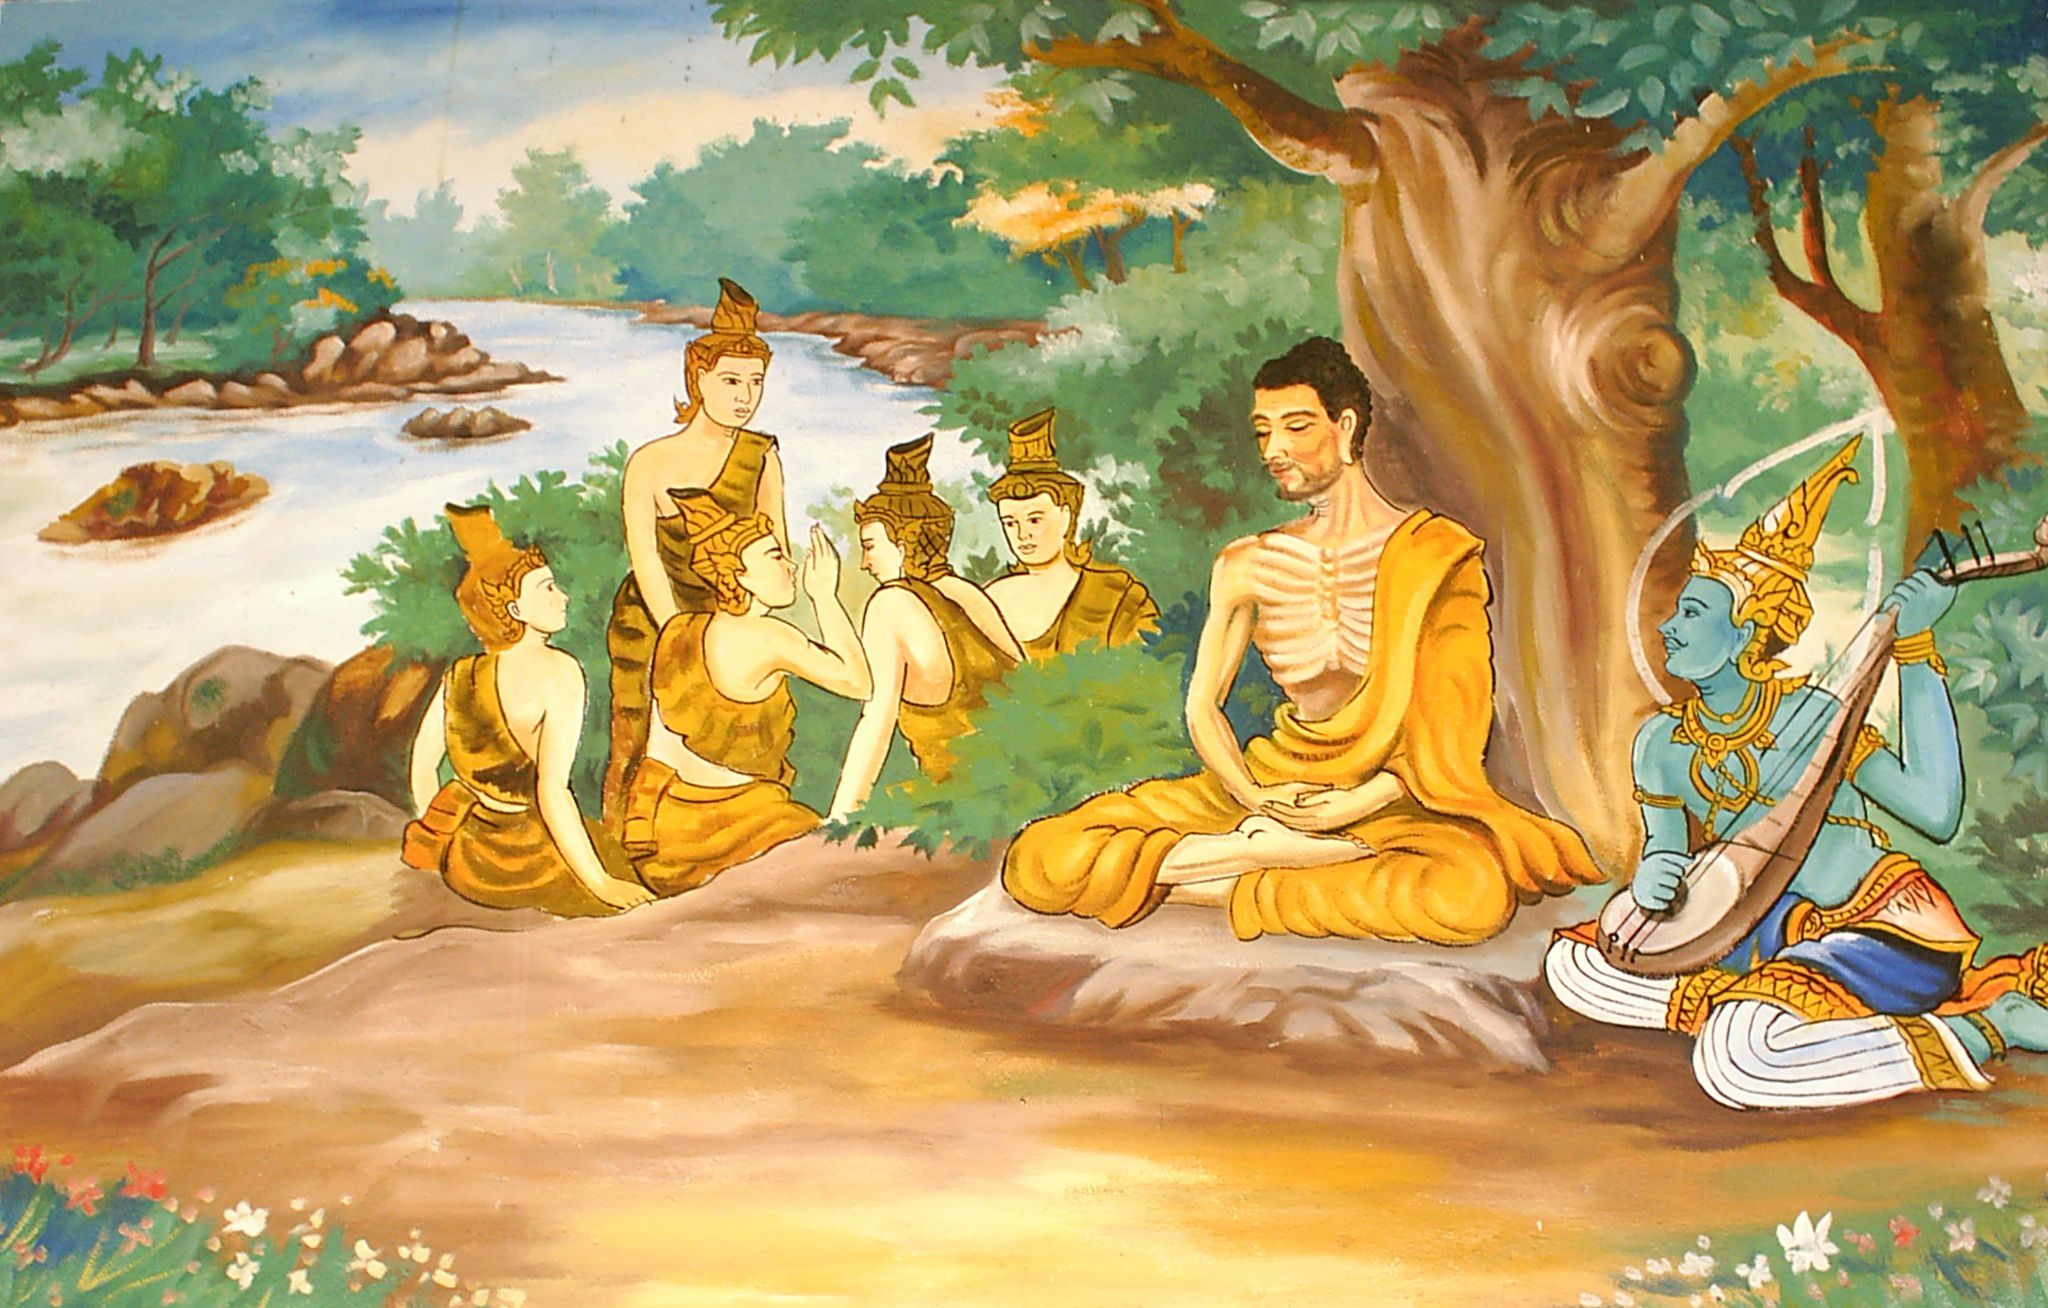 evolution of bhakti movement in india Bhakti arose in south india in the 7th to 10th centuries in poems that the alvars and the nayanars composed as a result of the bhakti movement about evolution.